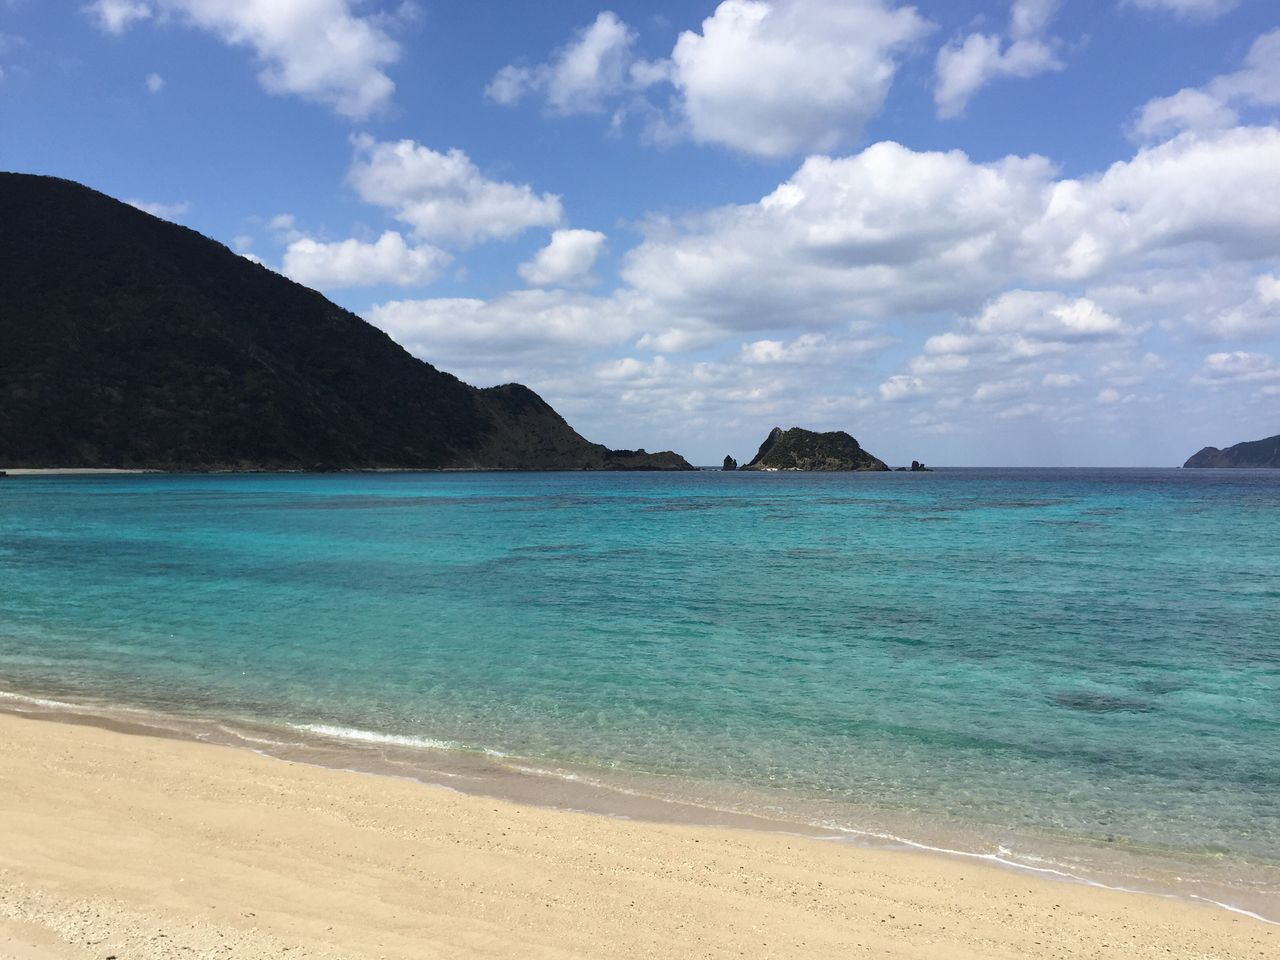 Sea Beach Tranquility Tranquil Scene Scenics Sky Beauty In Nature Idyllic Nature Water Cloud - Sky Sand Horizon Over Water No People Outdoors Travel Destinations Day Winter Sea Amami Island Kagoshima